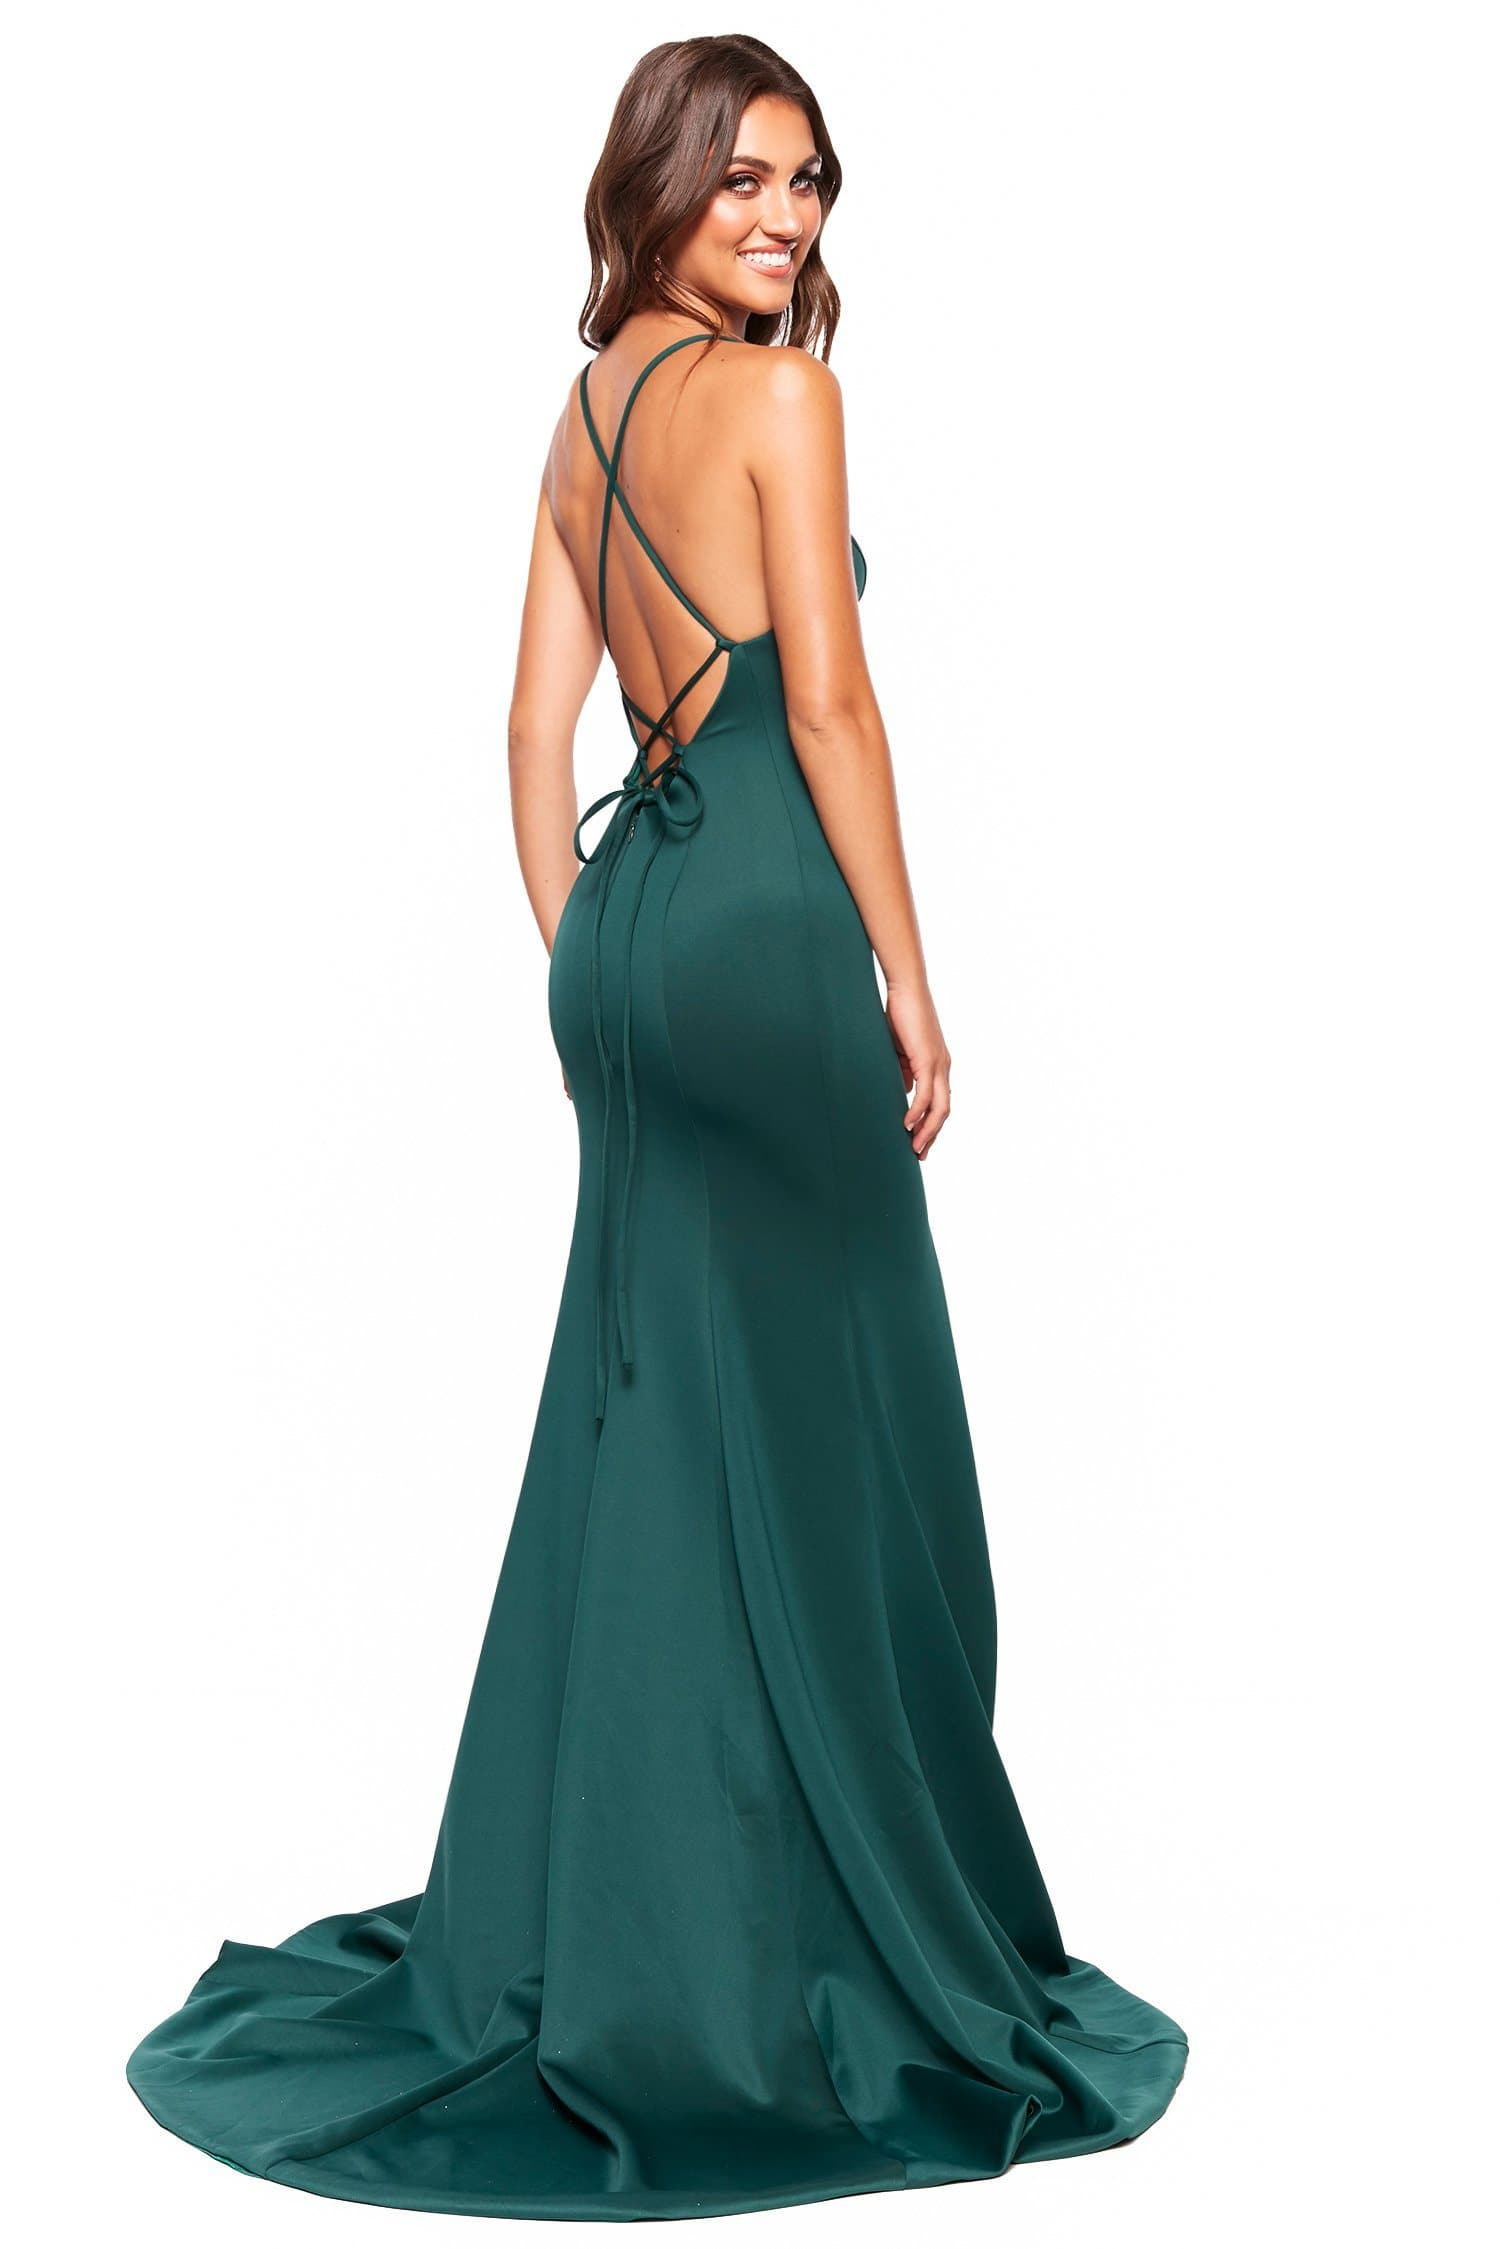 A&N Luxe Emilie - Emerald Gown with V-Neck, Lace-Up Back & Side slit